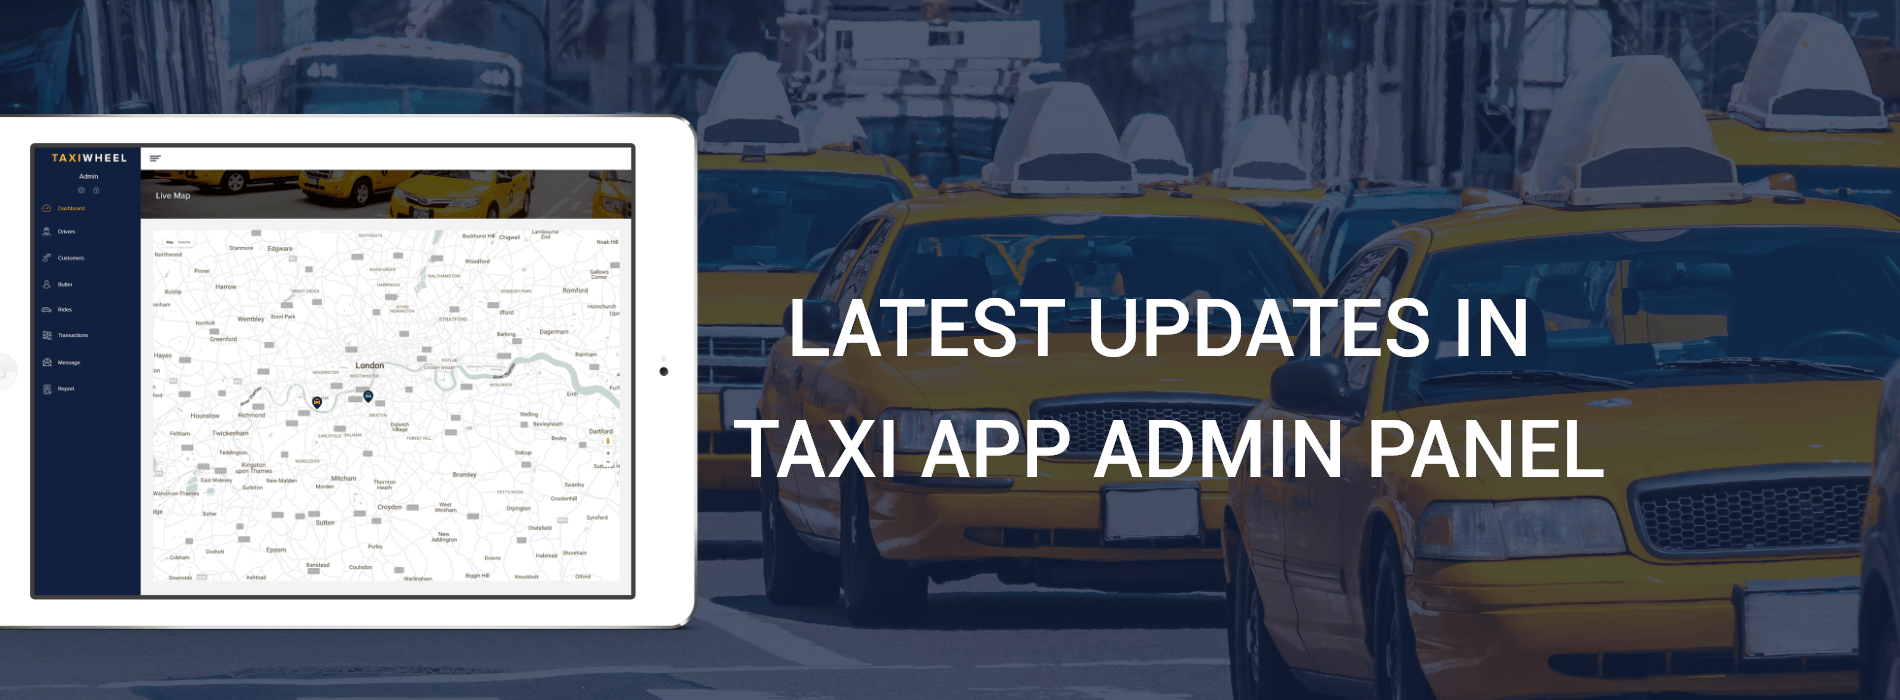 Latest Updates in Taxi App Admin Panel